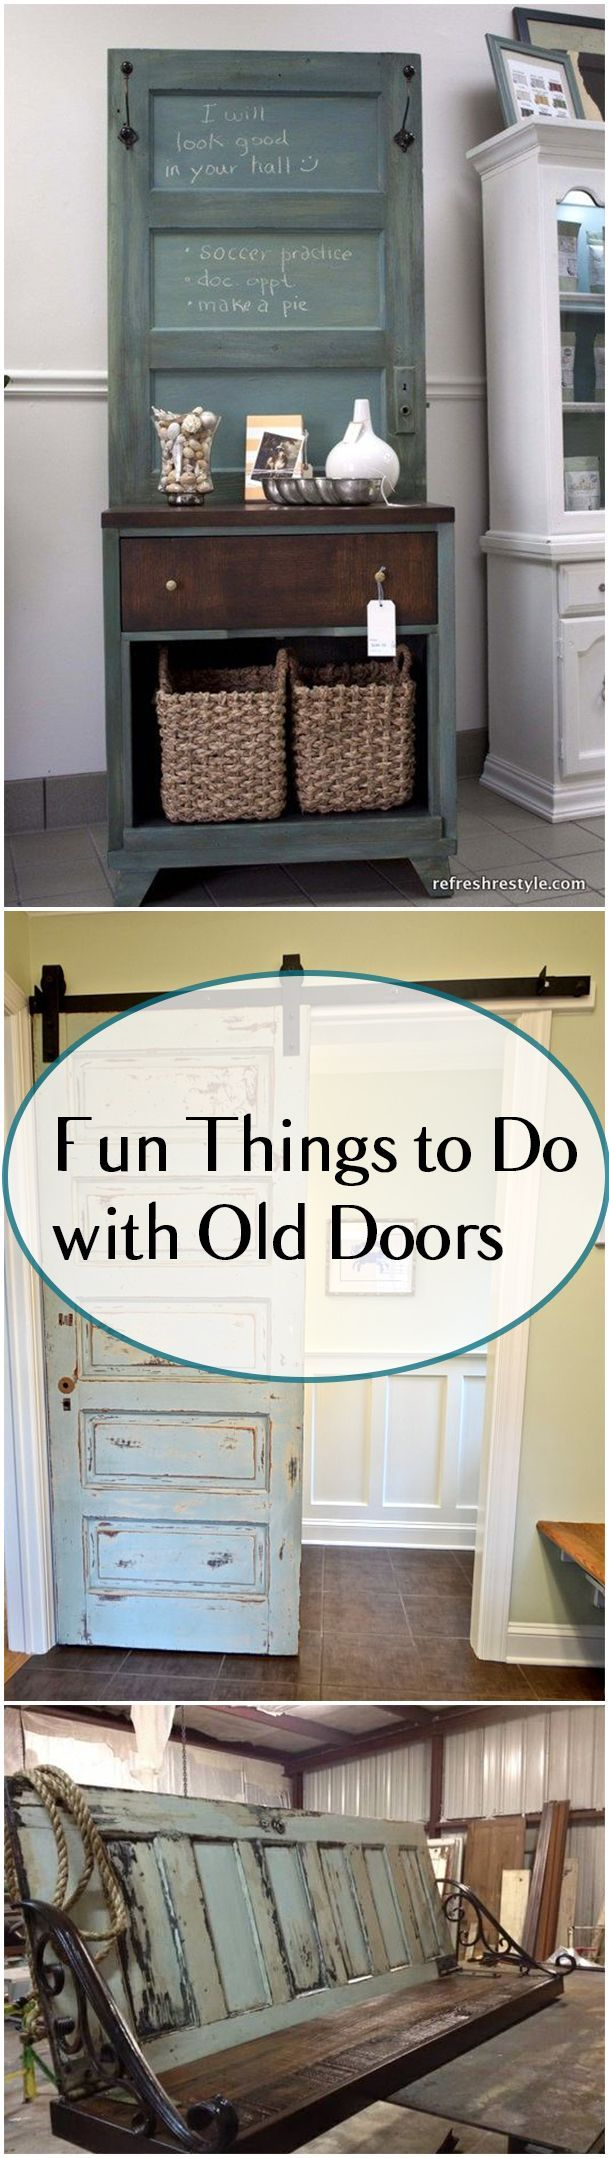 Fun Projects you can make with old doors. Amazing upcycled door projects. & Best 25+ Recycled door ideas on Pinterest | Repurposed doors Old ... pezcame.com